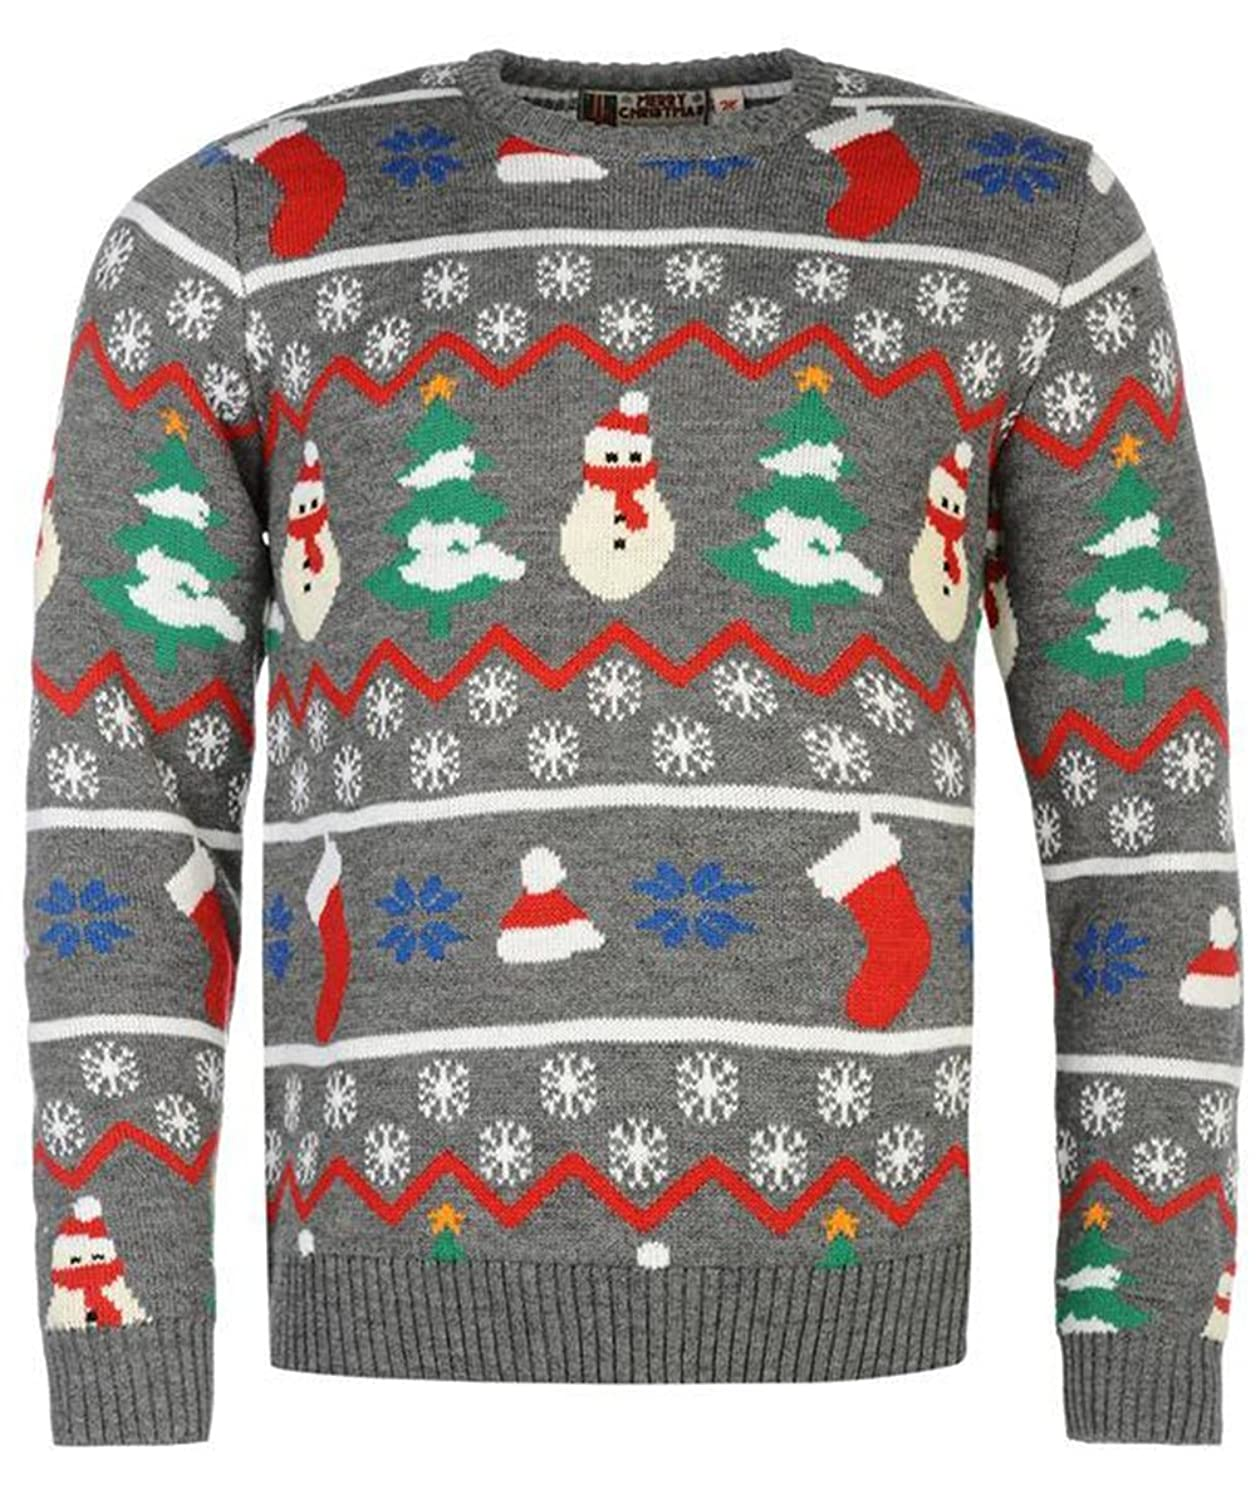 Mens Fine Knitted Festive Christmas Jumper Top